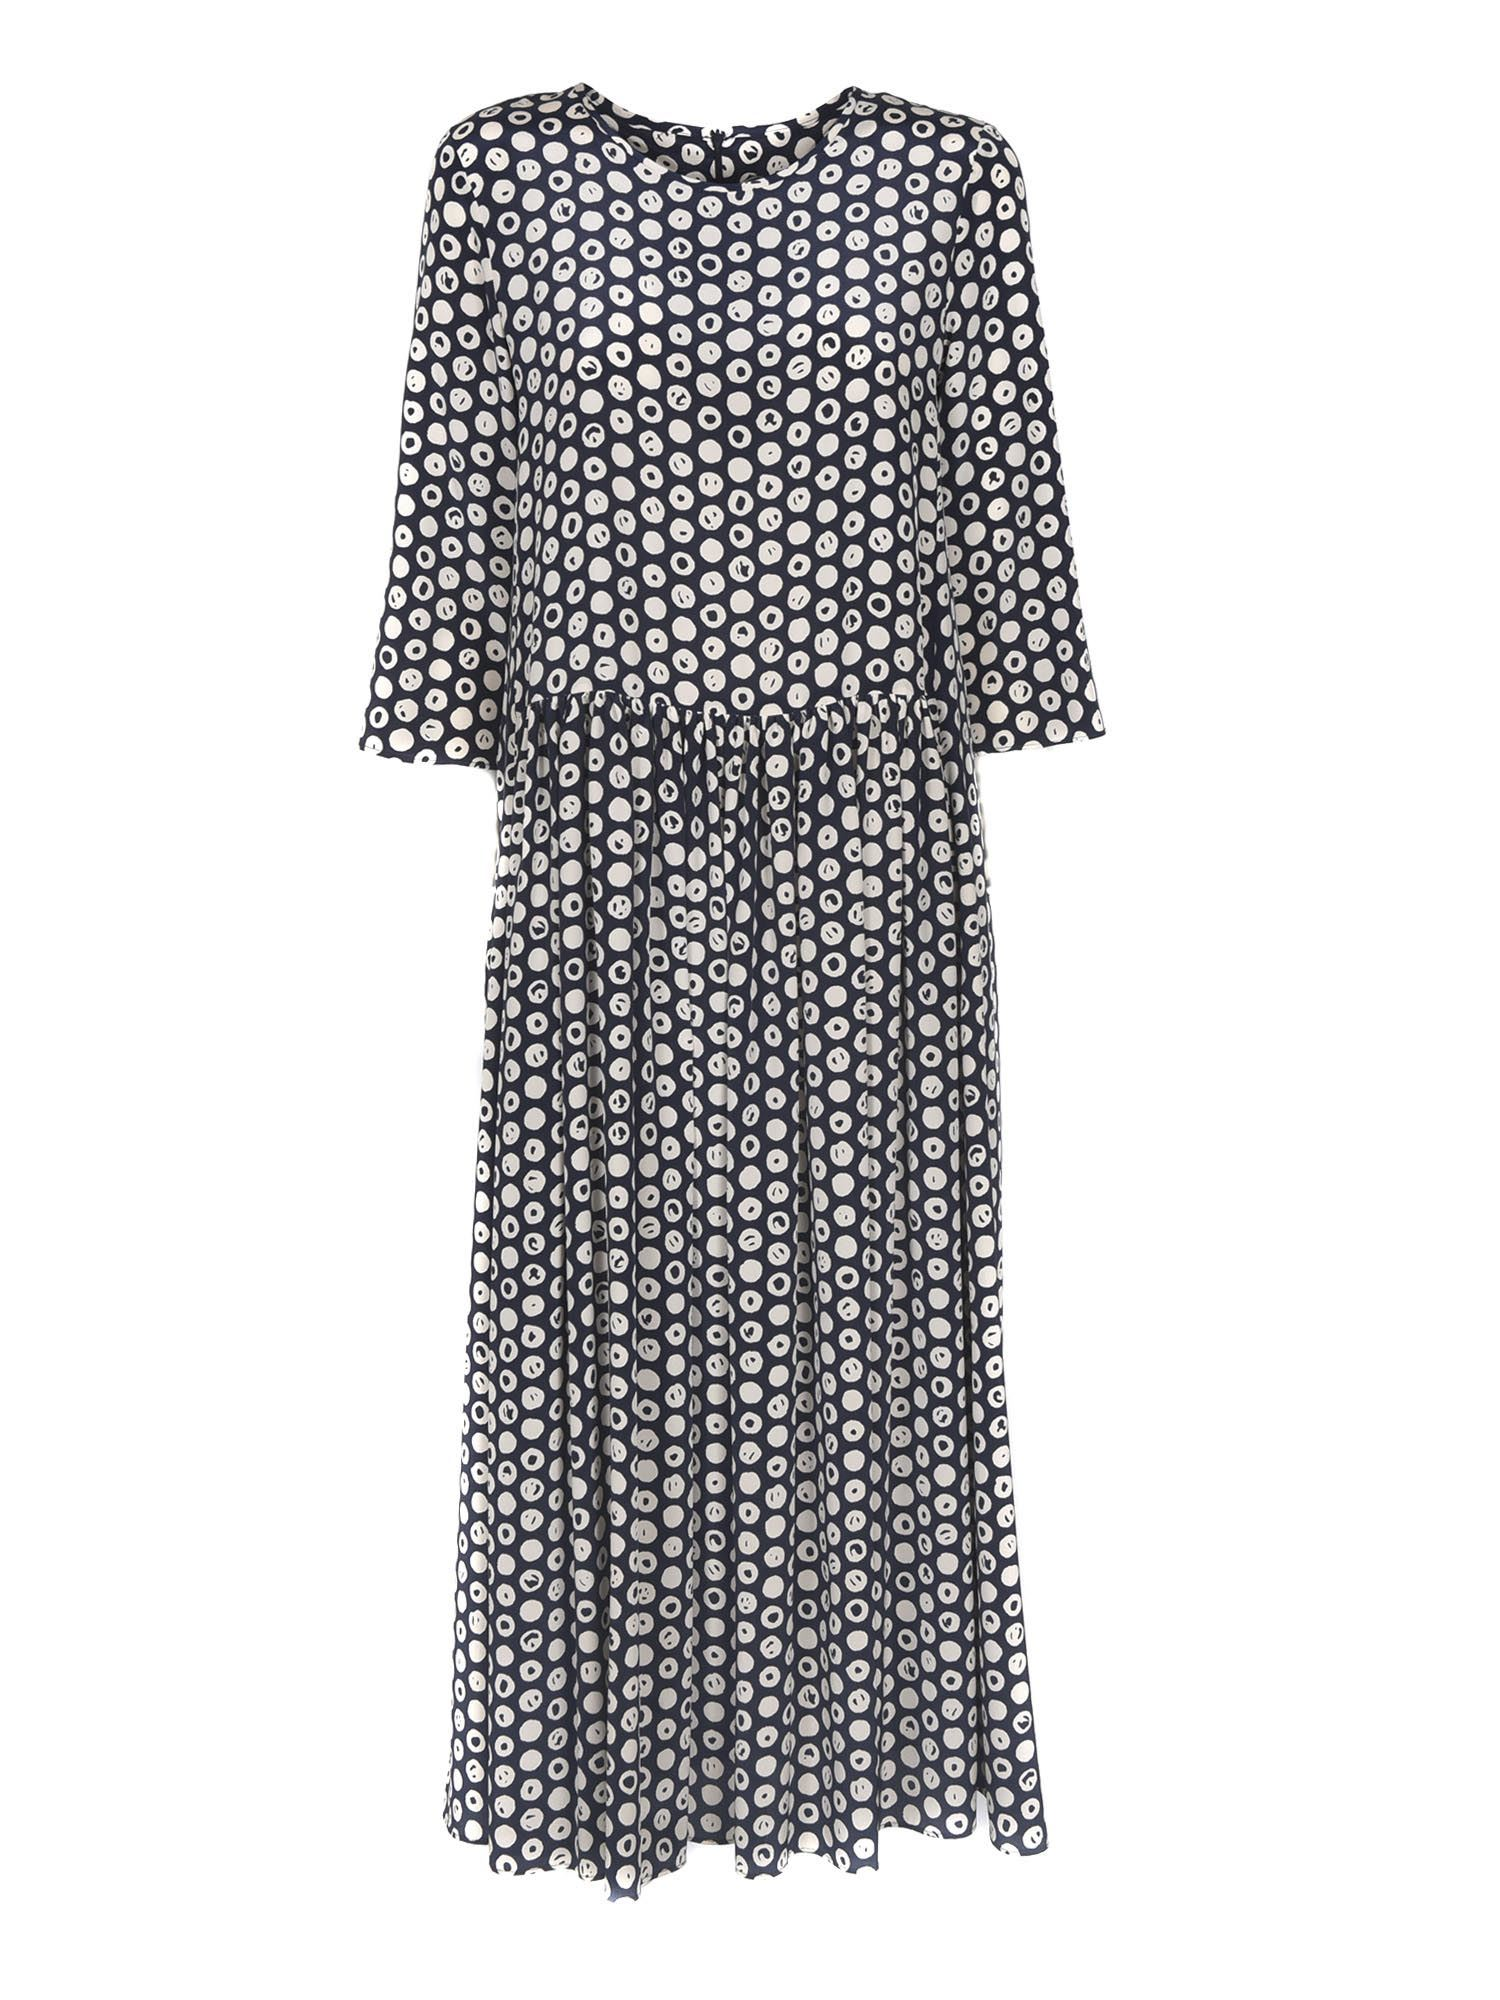 Max Mara GEMMA PRINTED DRESS IN BLUE